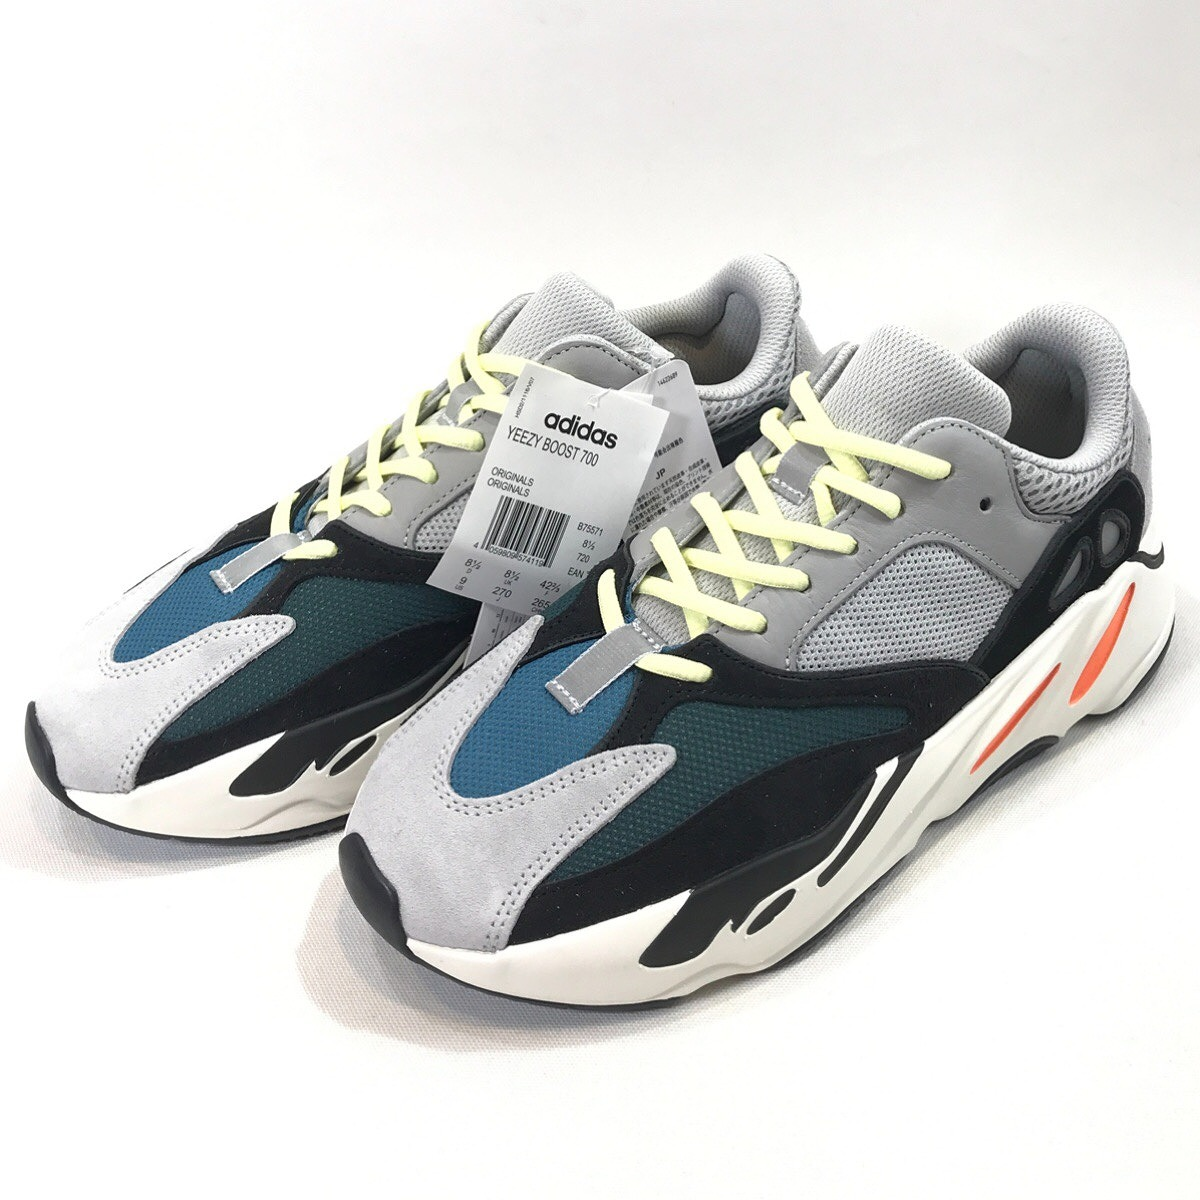 sports shoes 64d82 b4e58 It includes collect on delivery charges including an adidas YEEZY BOOST 700  WAVE RUNNER 27.0cm B75571 Adidas sneakers shoes gray black easy boost 700  ...